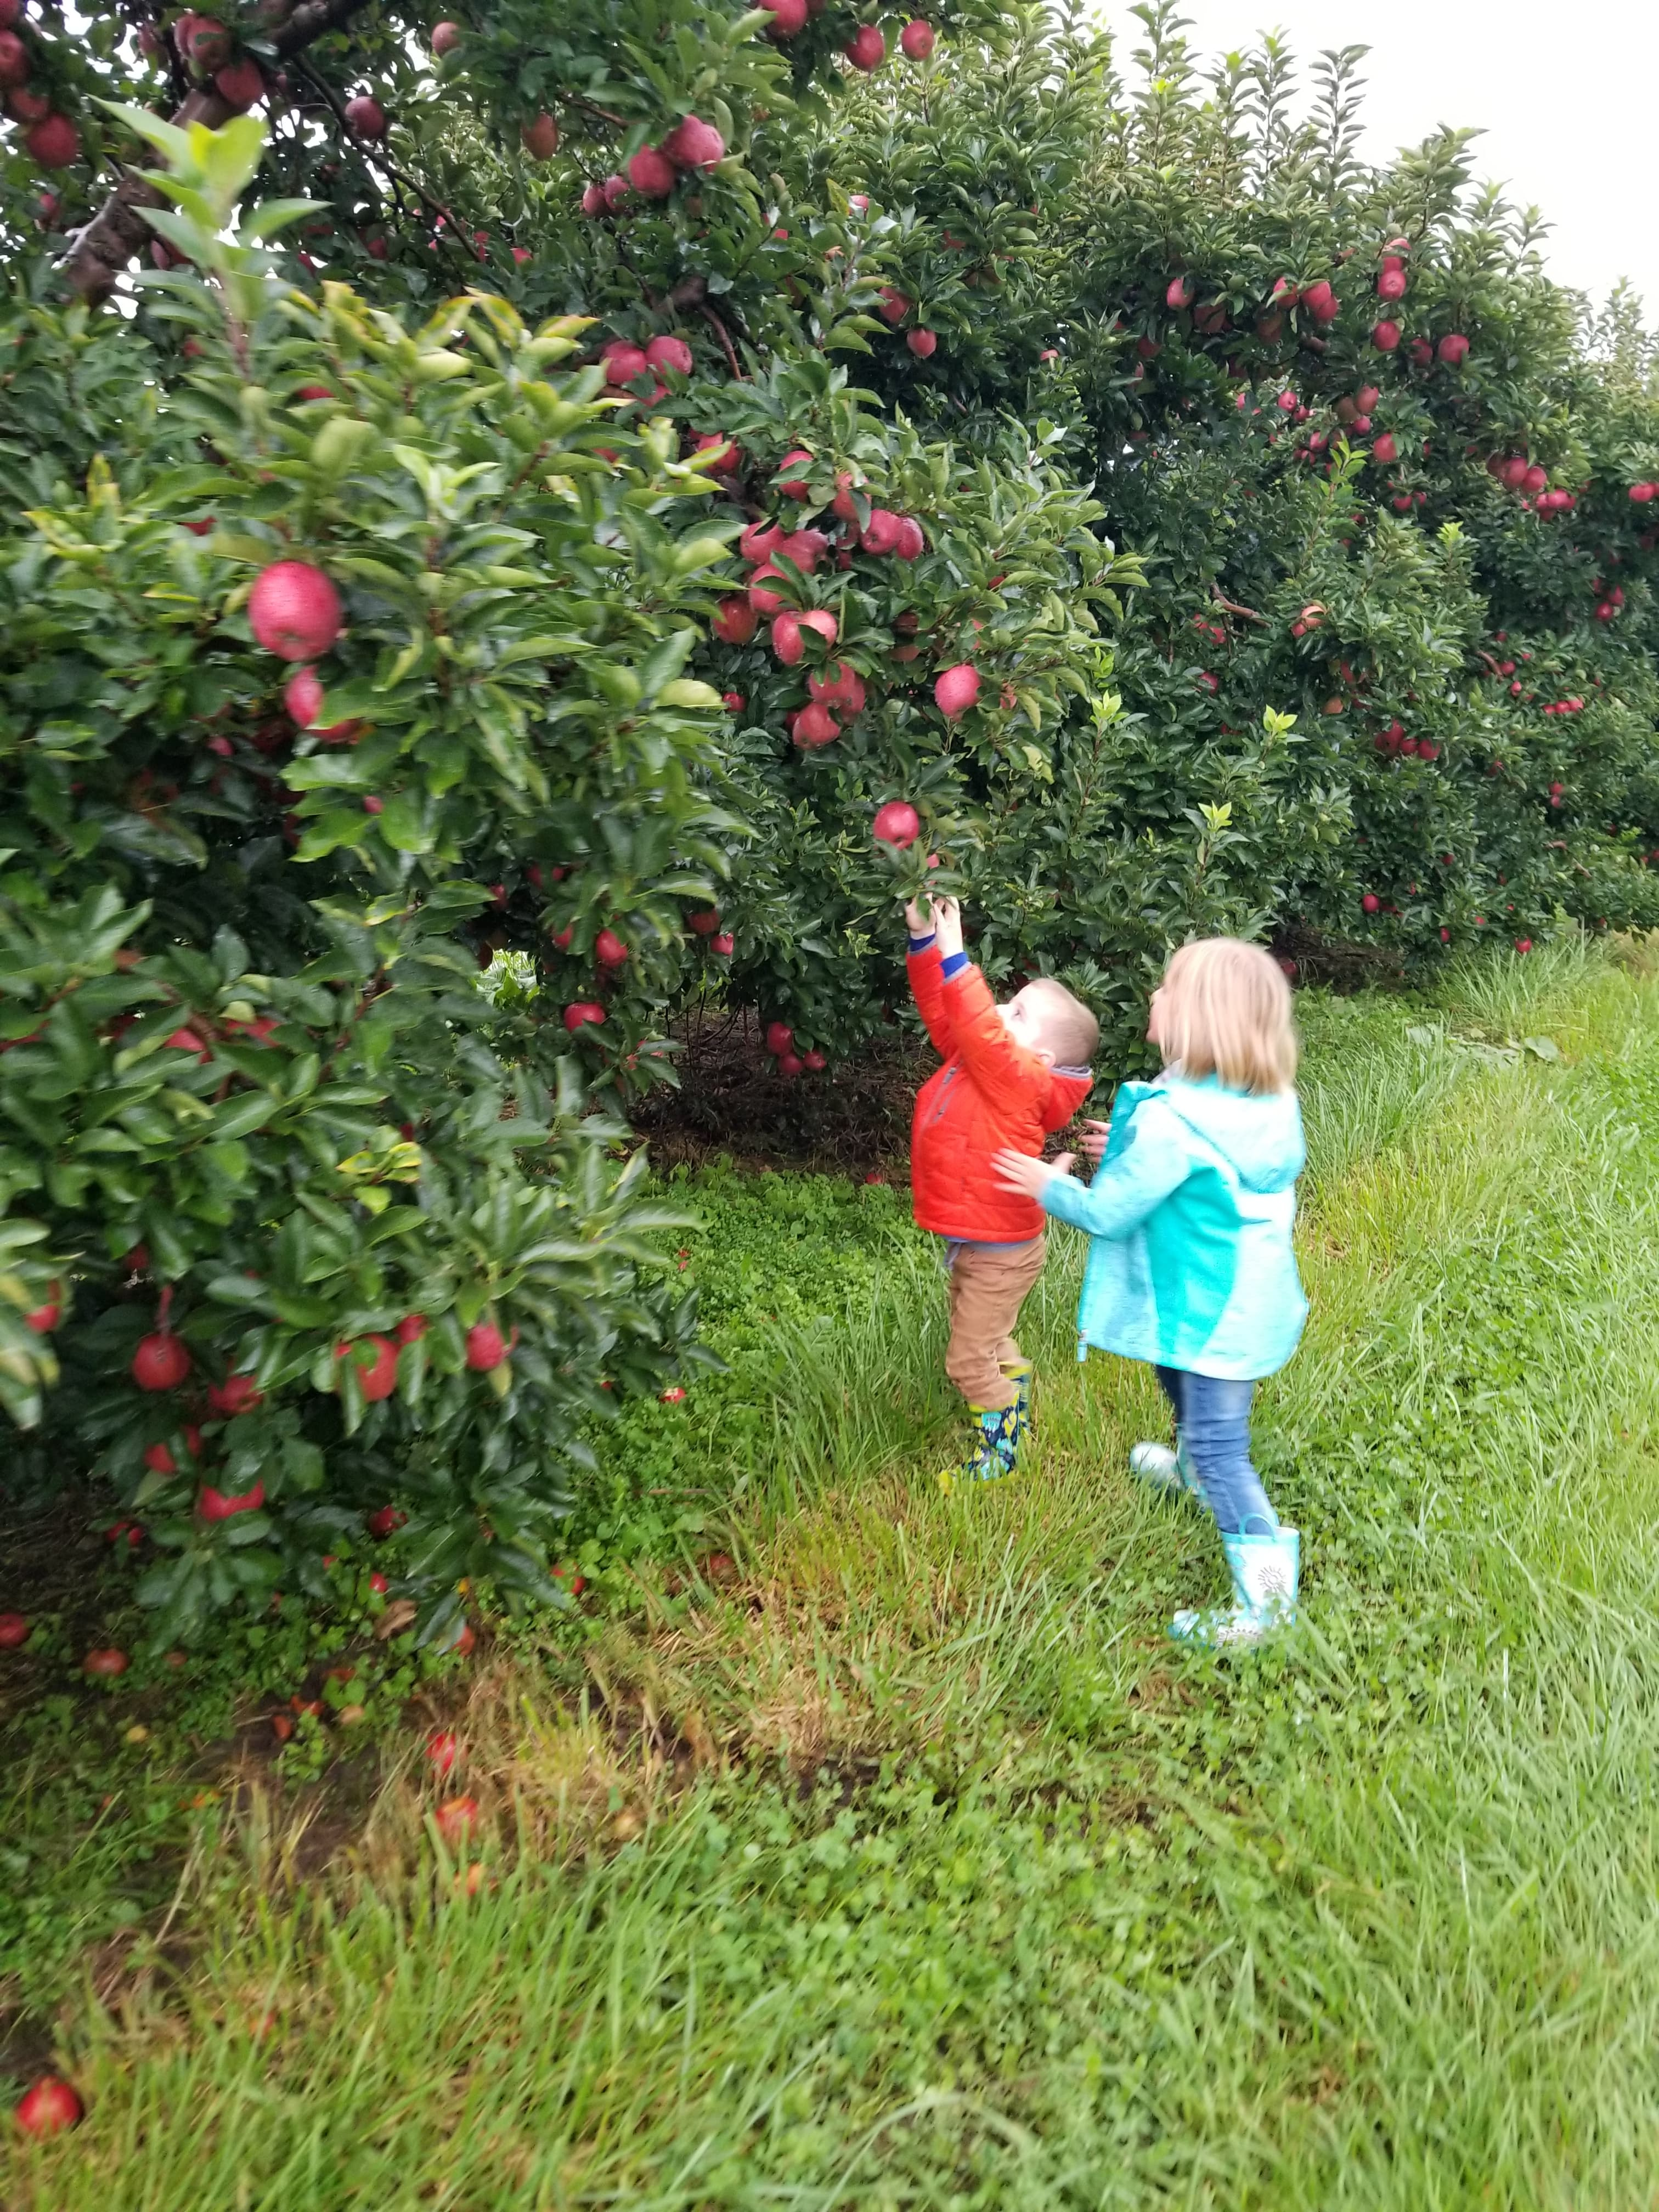 The kids loved picking apples on a day out with the family